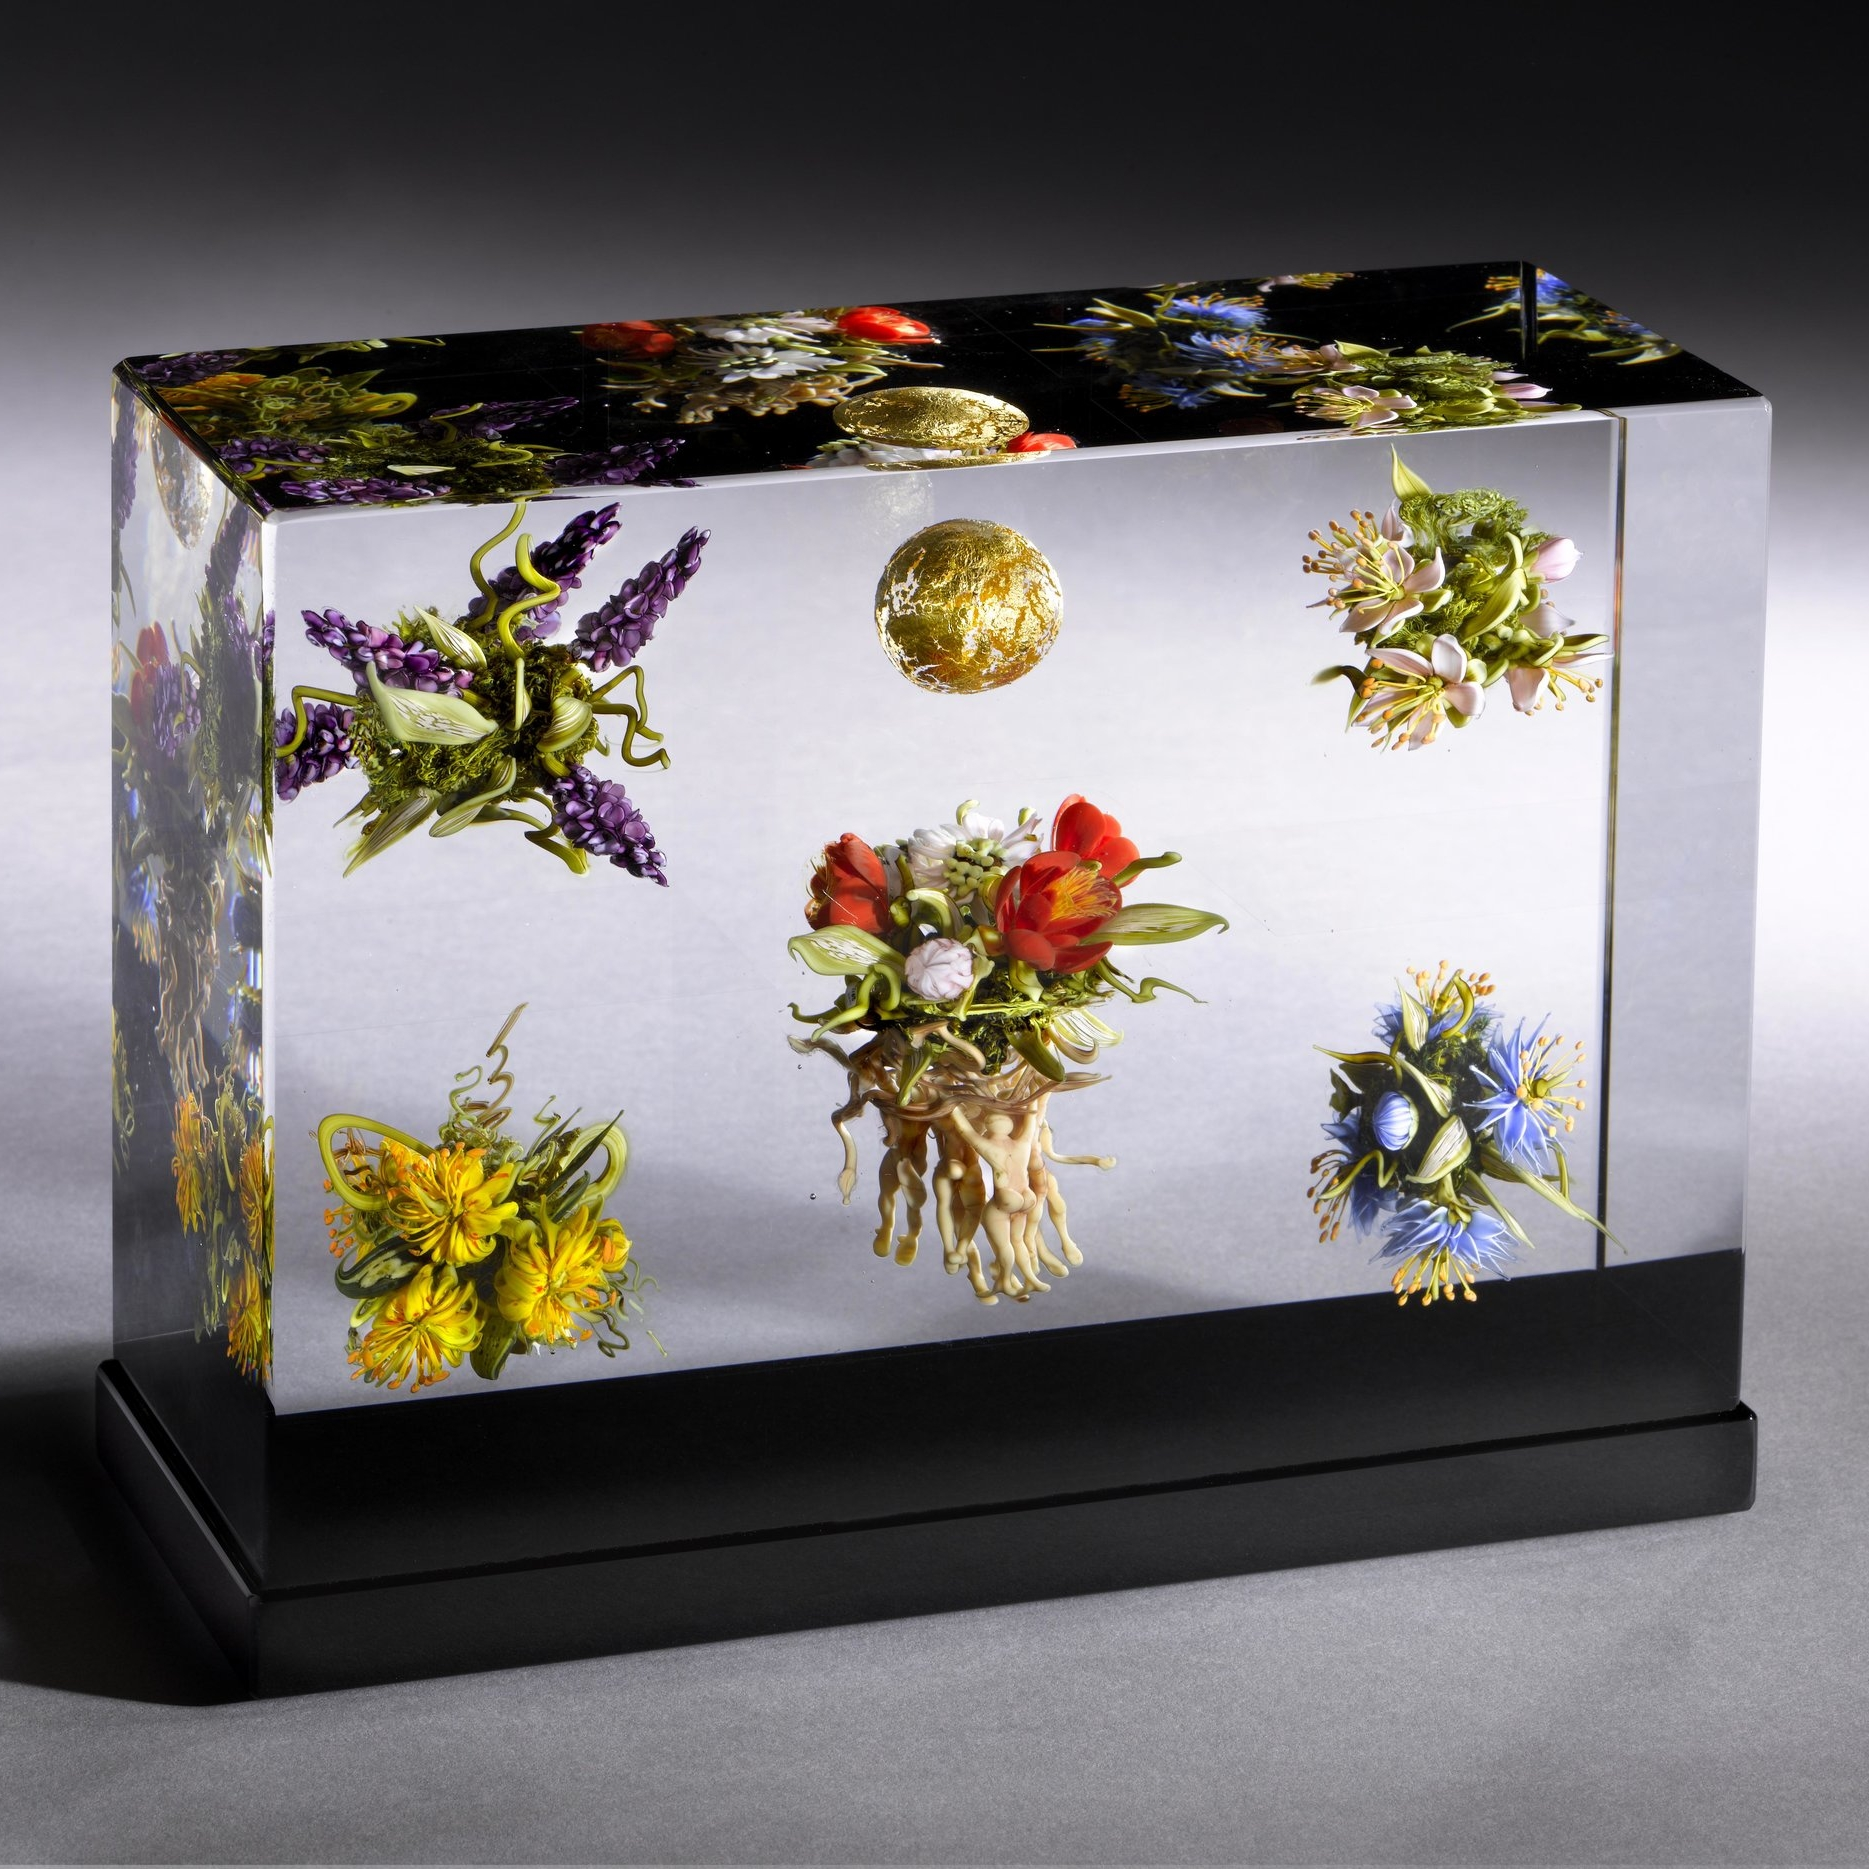 2011; Golden Orb, Floral Cluster and Figures Triptych; H. 6.0 inches x W. 8.12 inches x D. 3.0 inches